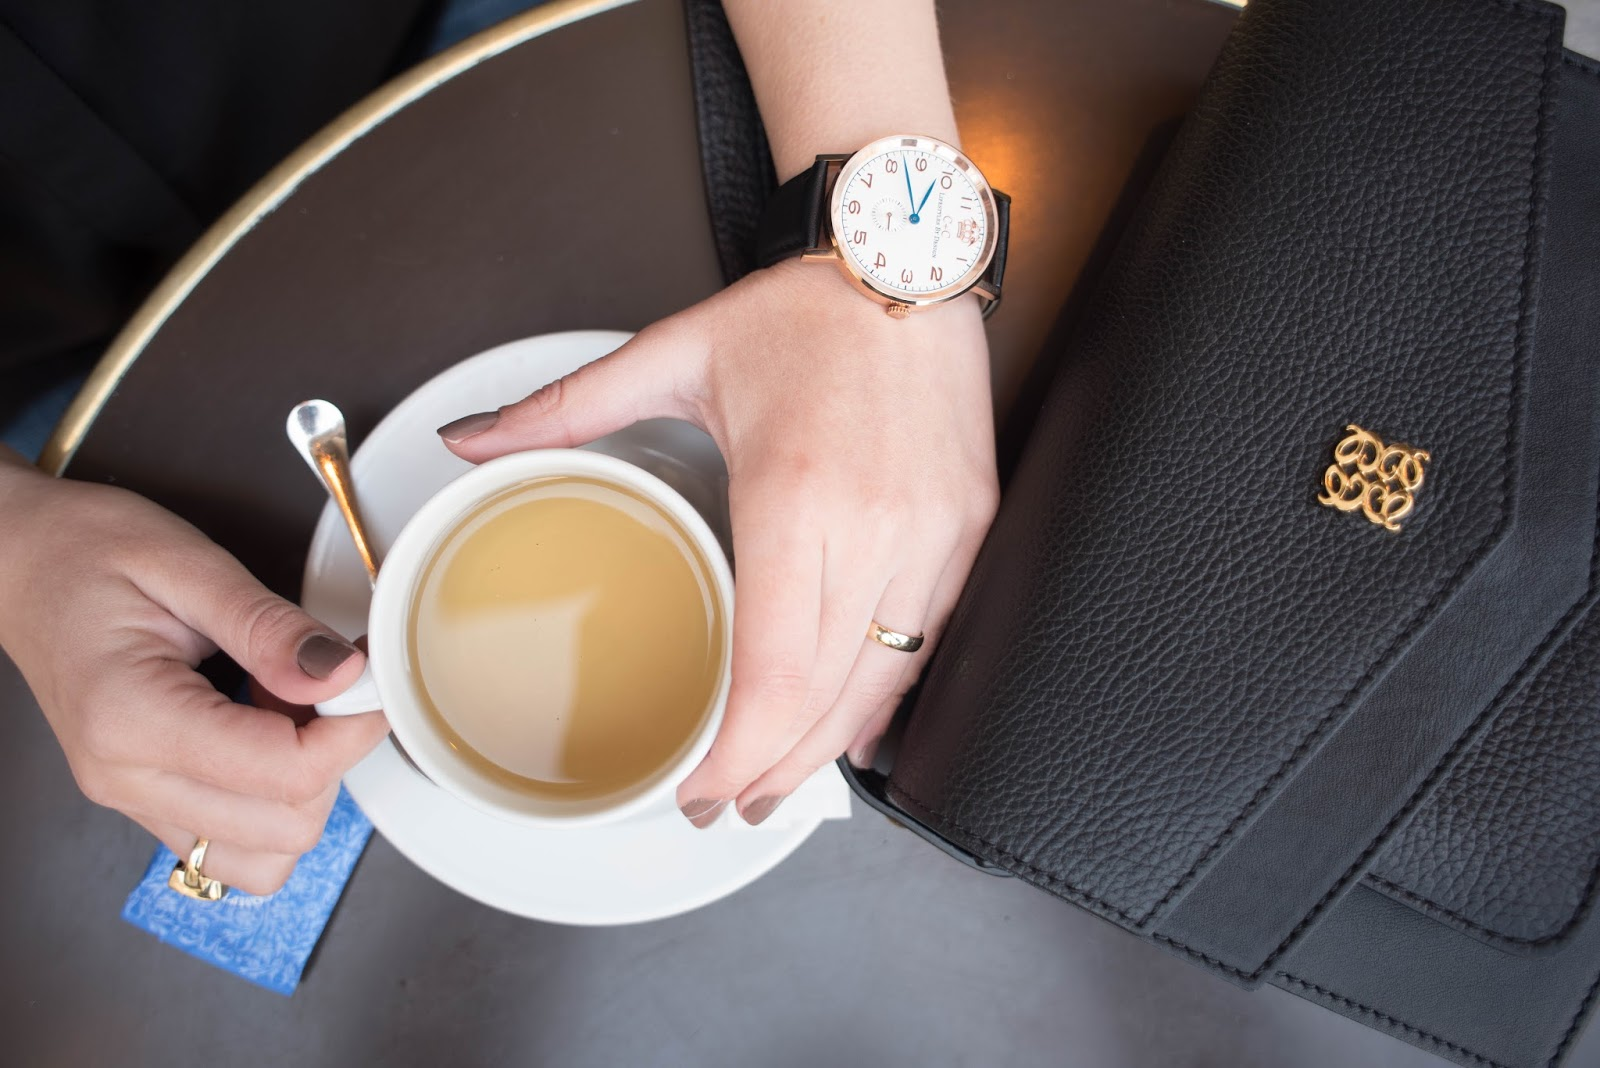 coco and vera, top paris fashion blog, angel reinares merlot, its all in the details, cc lifestyles watch, tea, le nemours, paris cafe, gold ring,